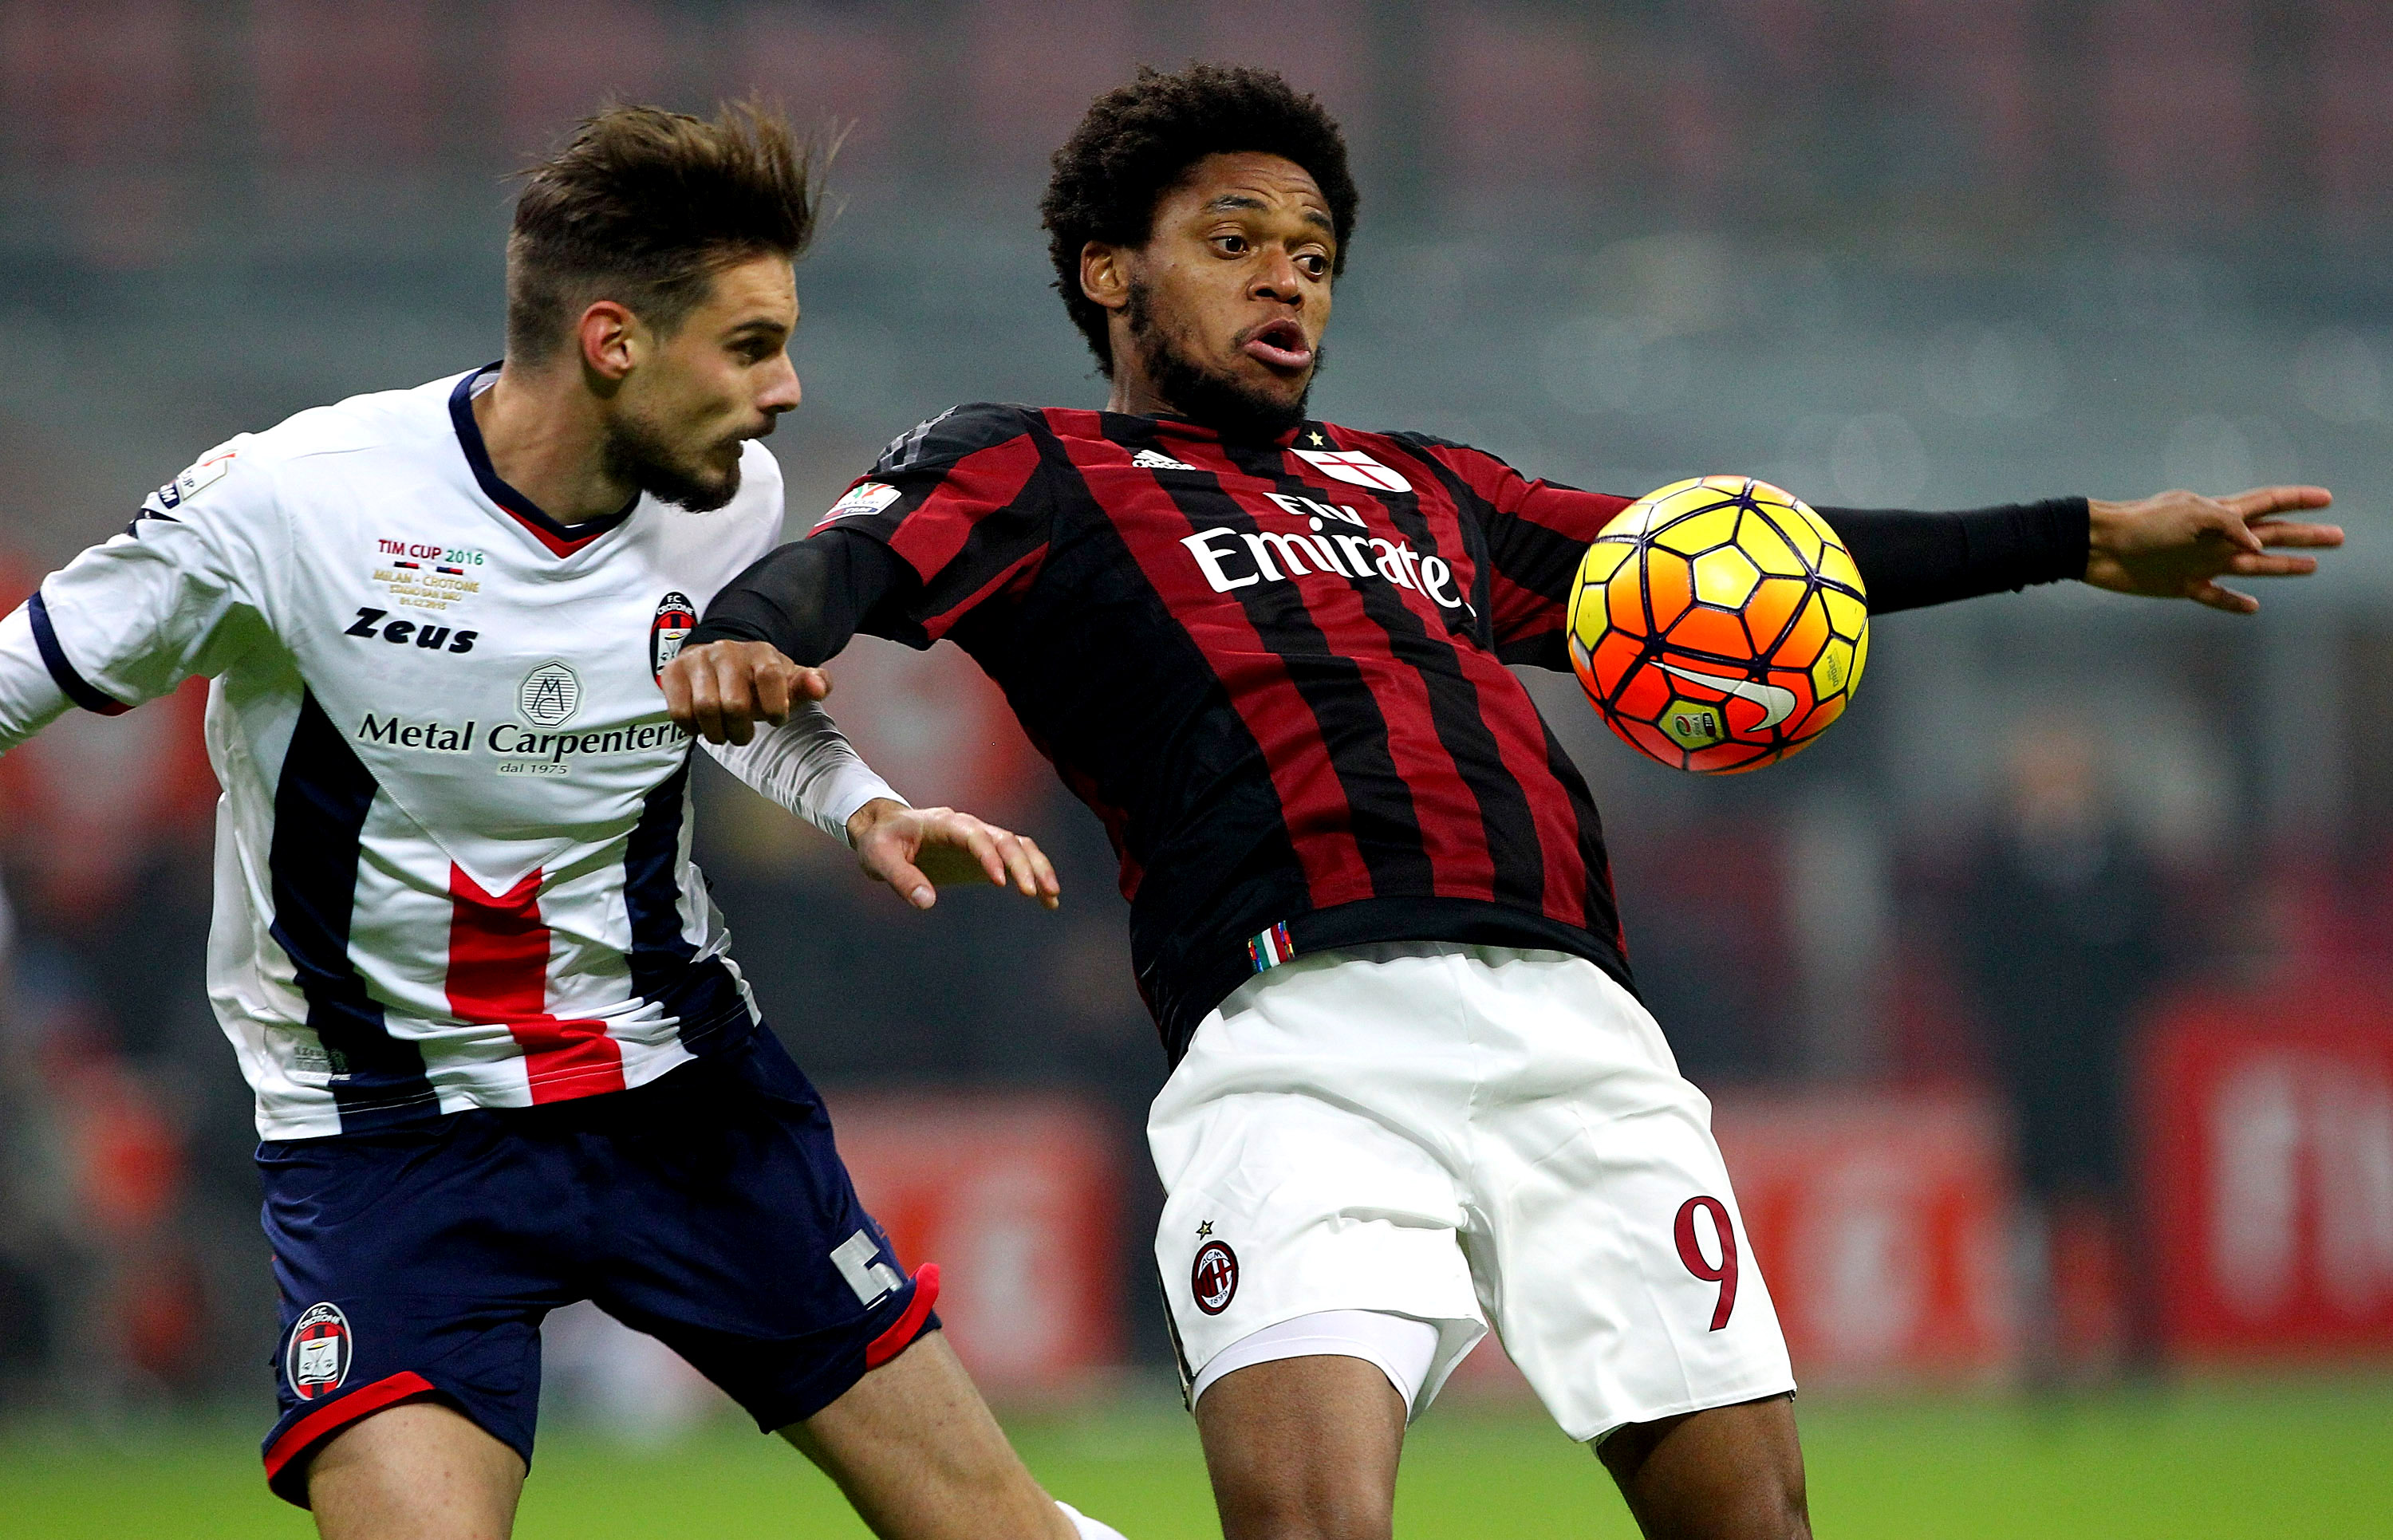 Luiz Adriano in action during the game